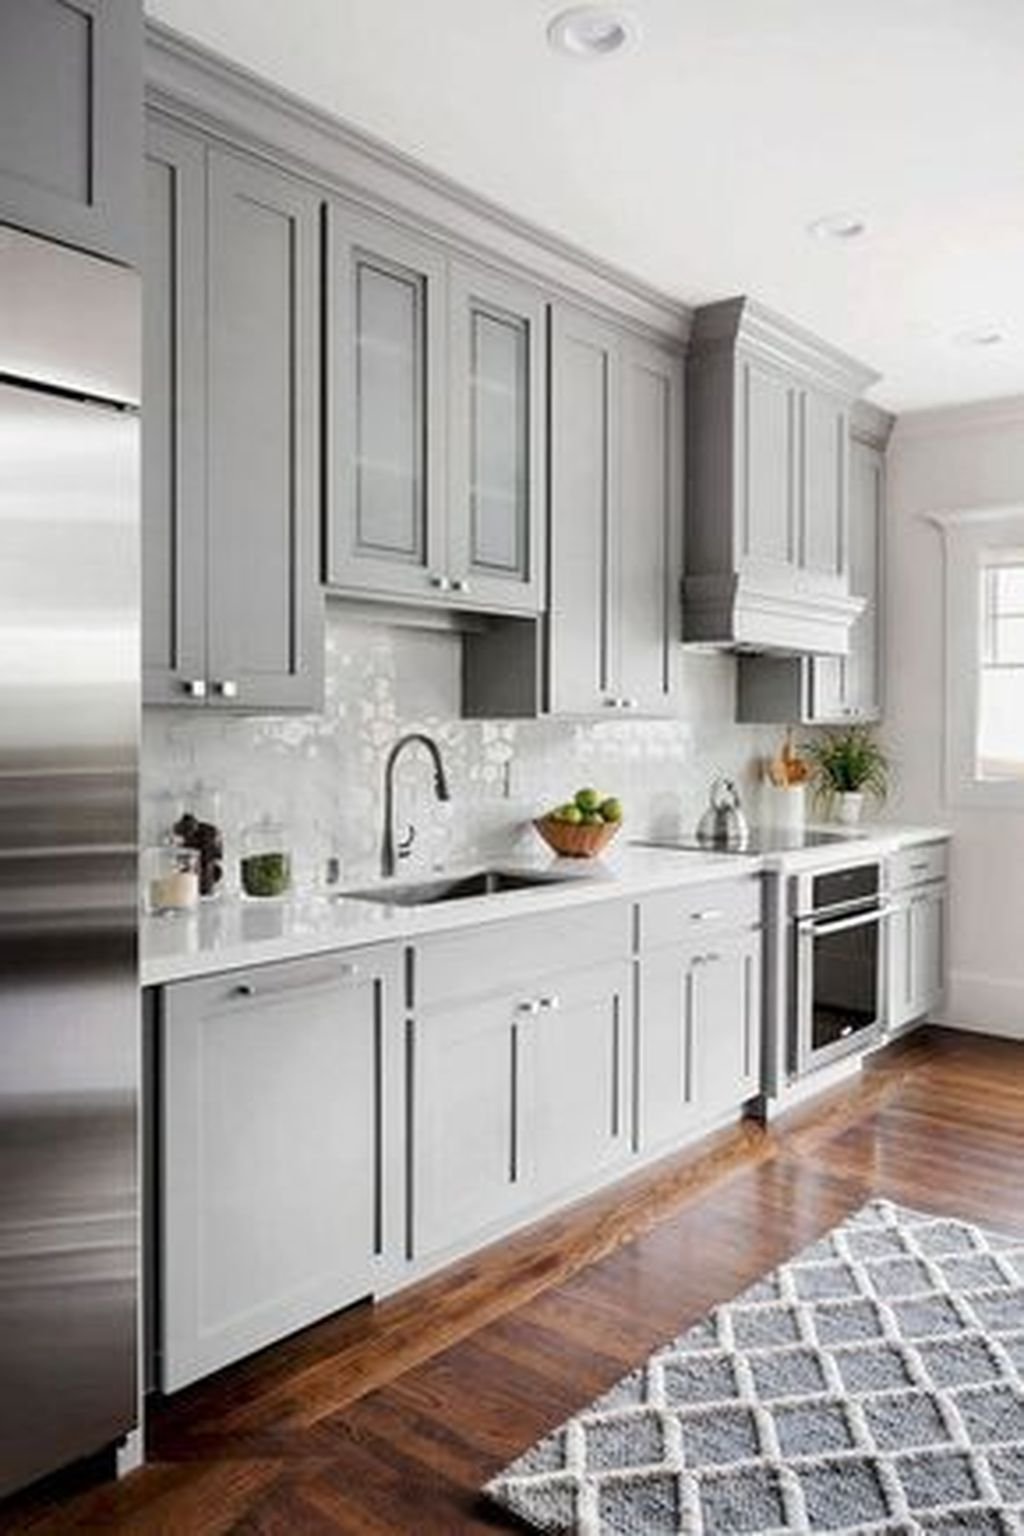 46 the best modern farmhouse kitchen design ideas to blend modern and classic theme shaker on farmhouse kitchen wall colors id=25561